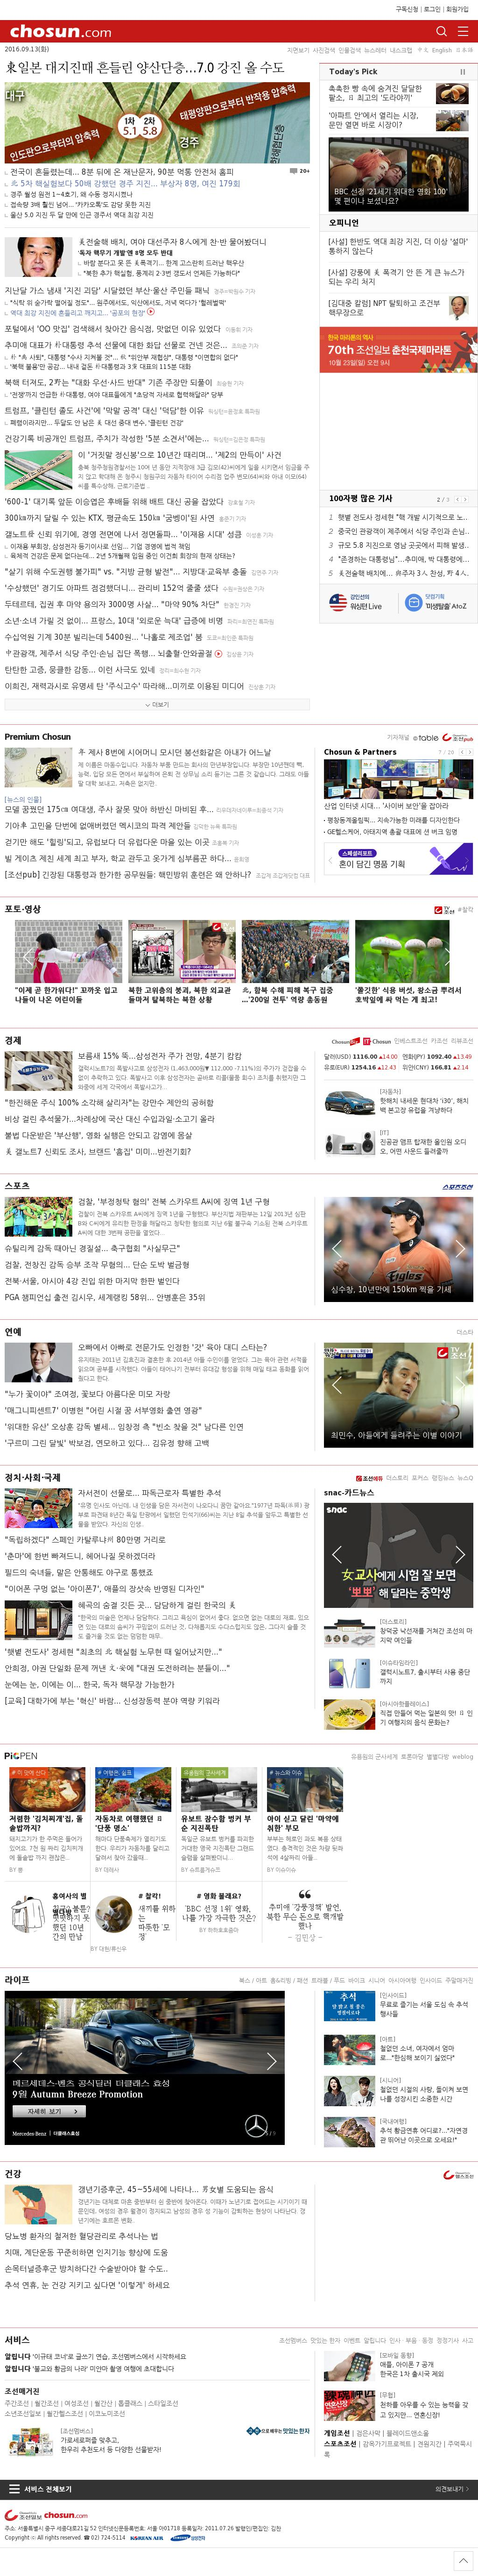 chosun.com at Monday Sept. 12, 2016, 11:01 p.m. UTC